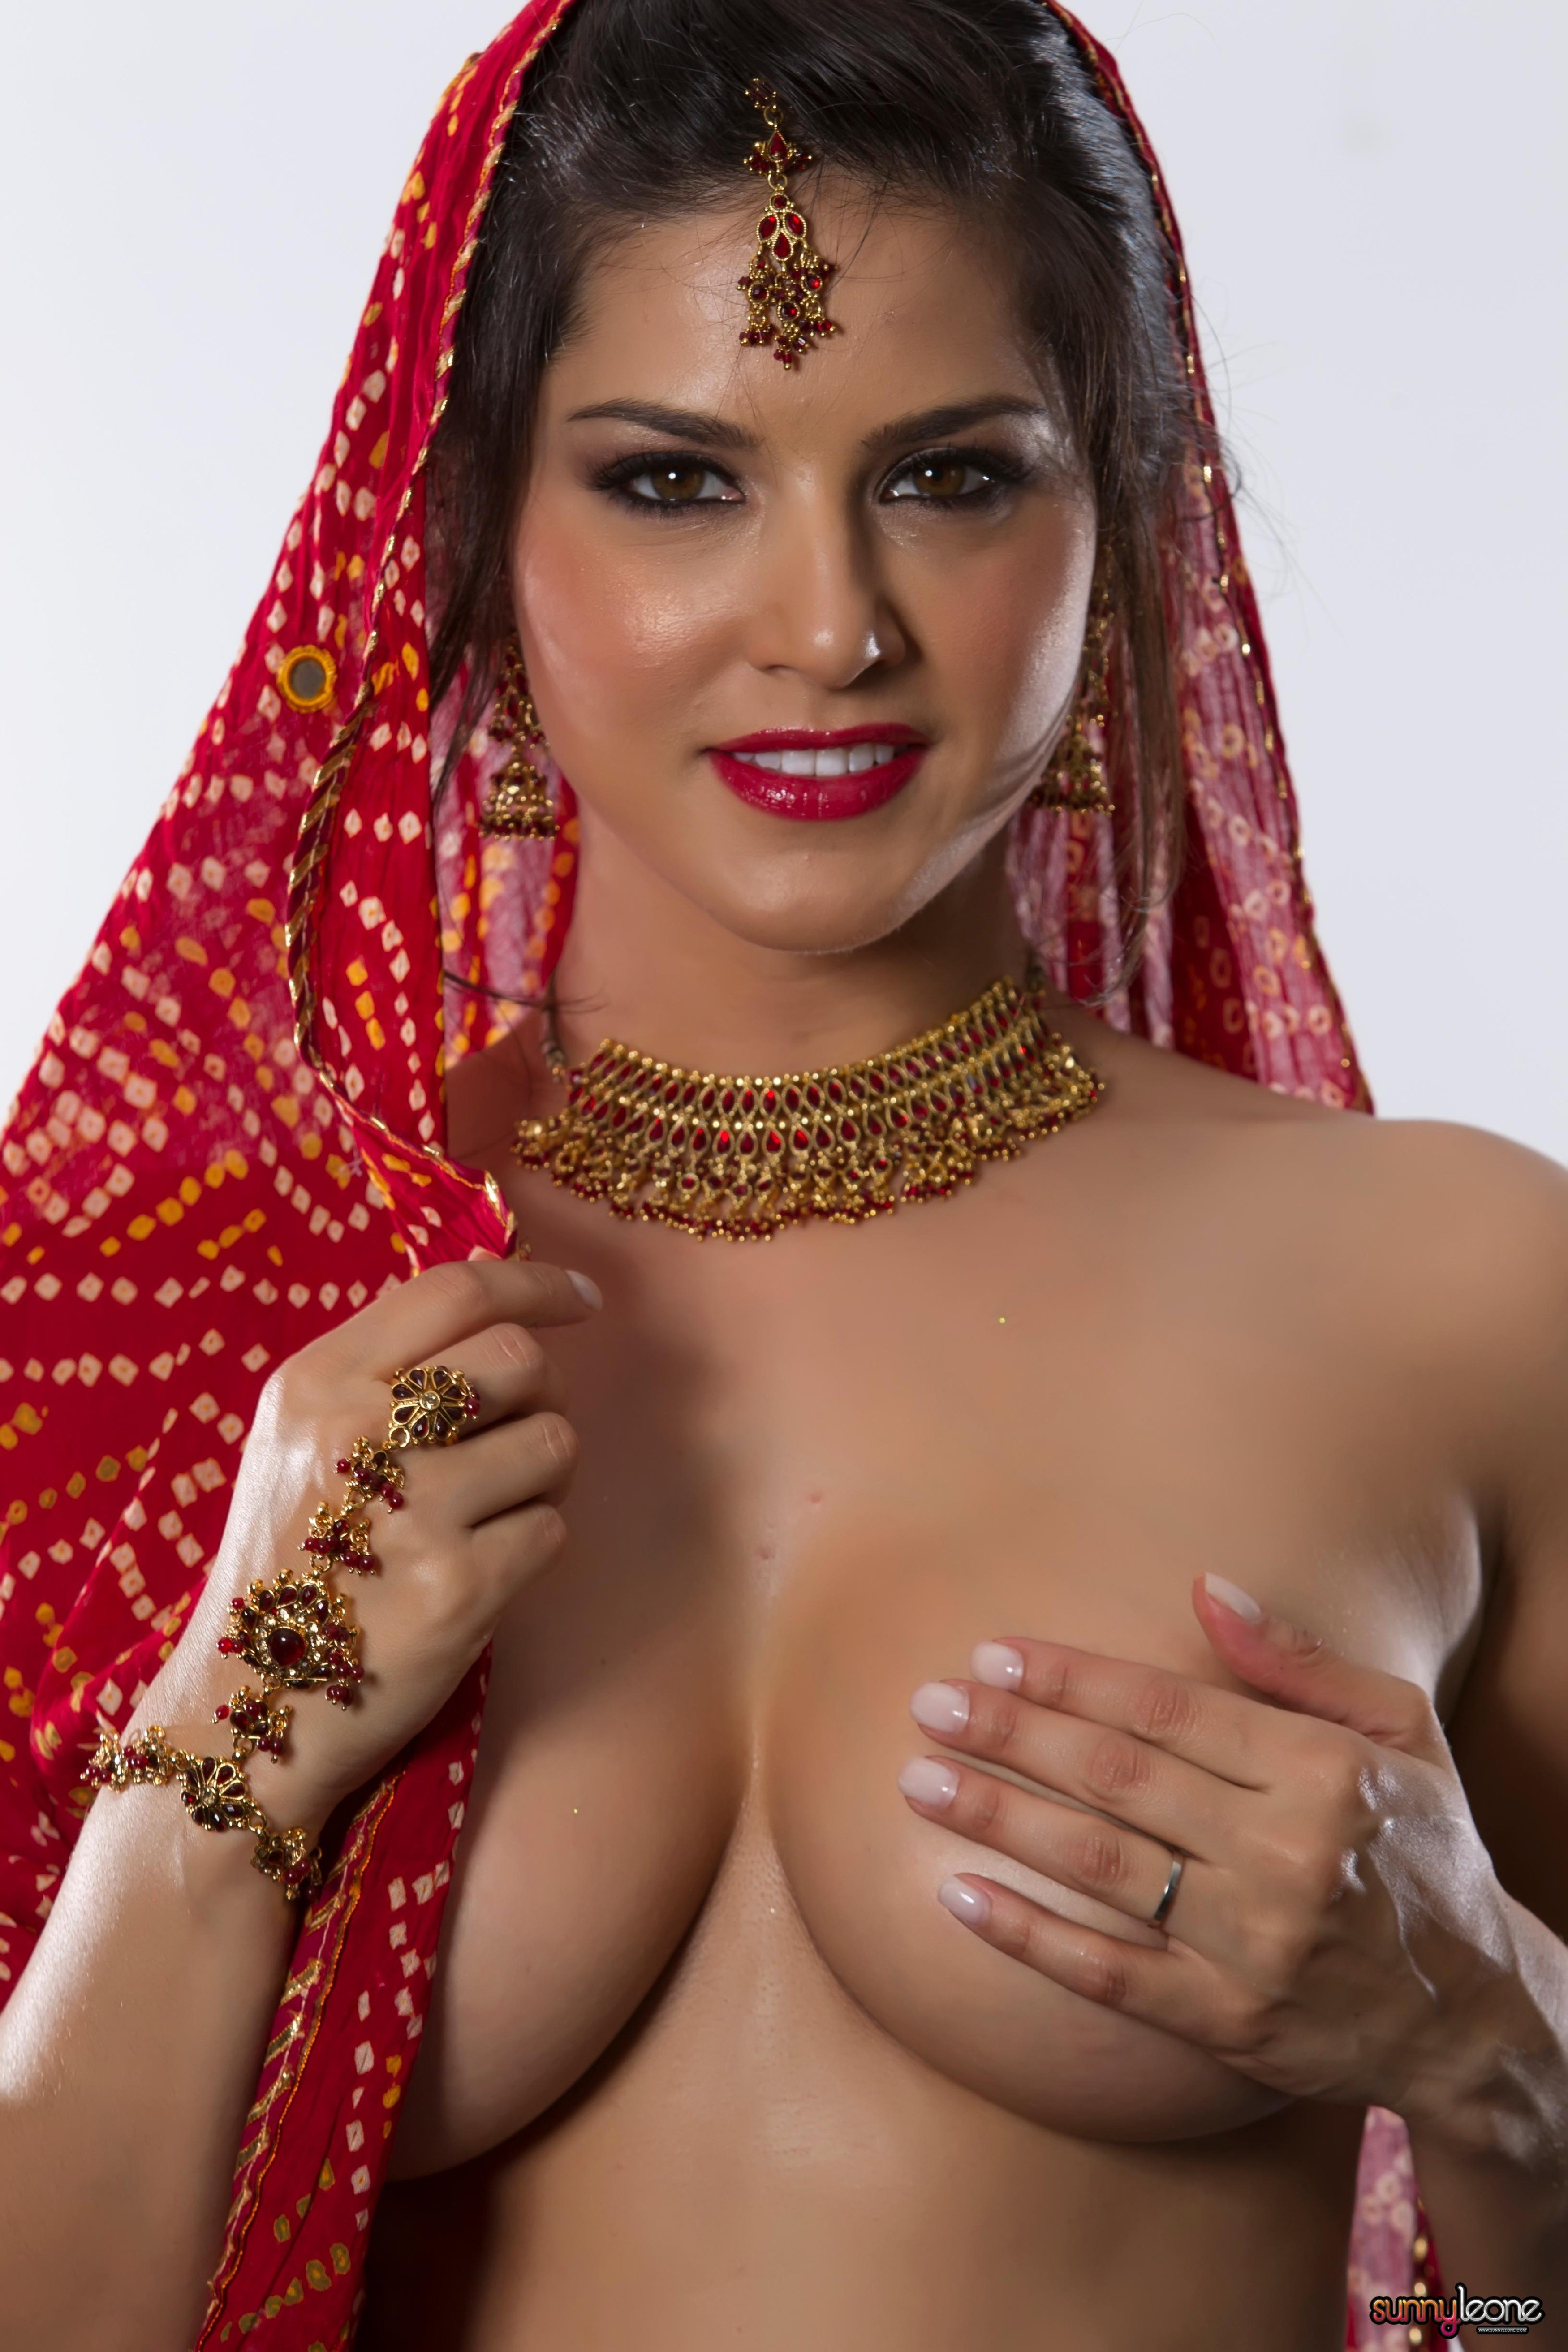 Top seduction scenes of bollywood actresses